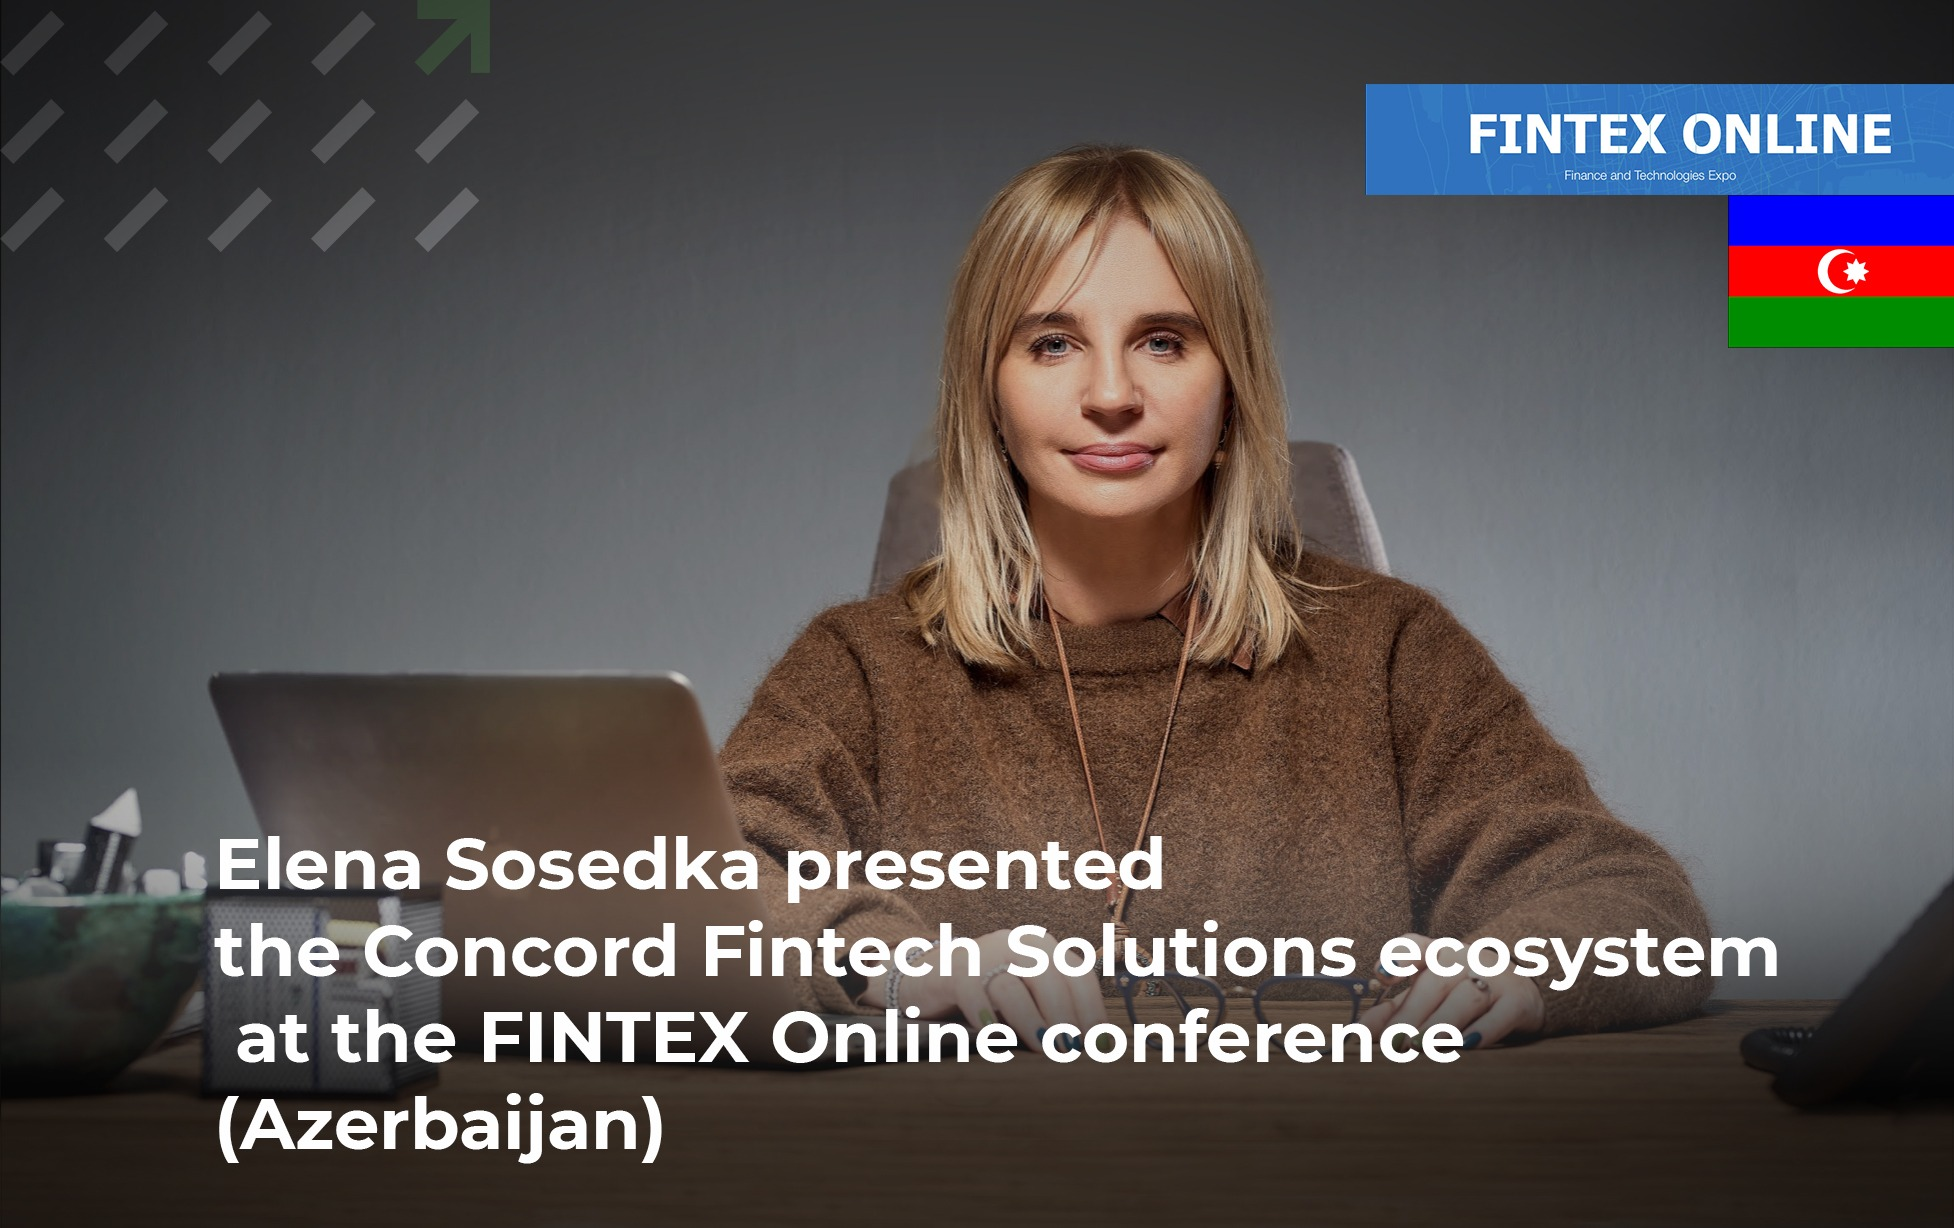 Concord Fintech Solutions